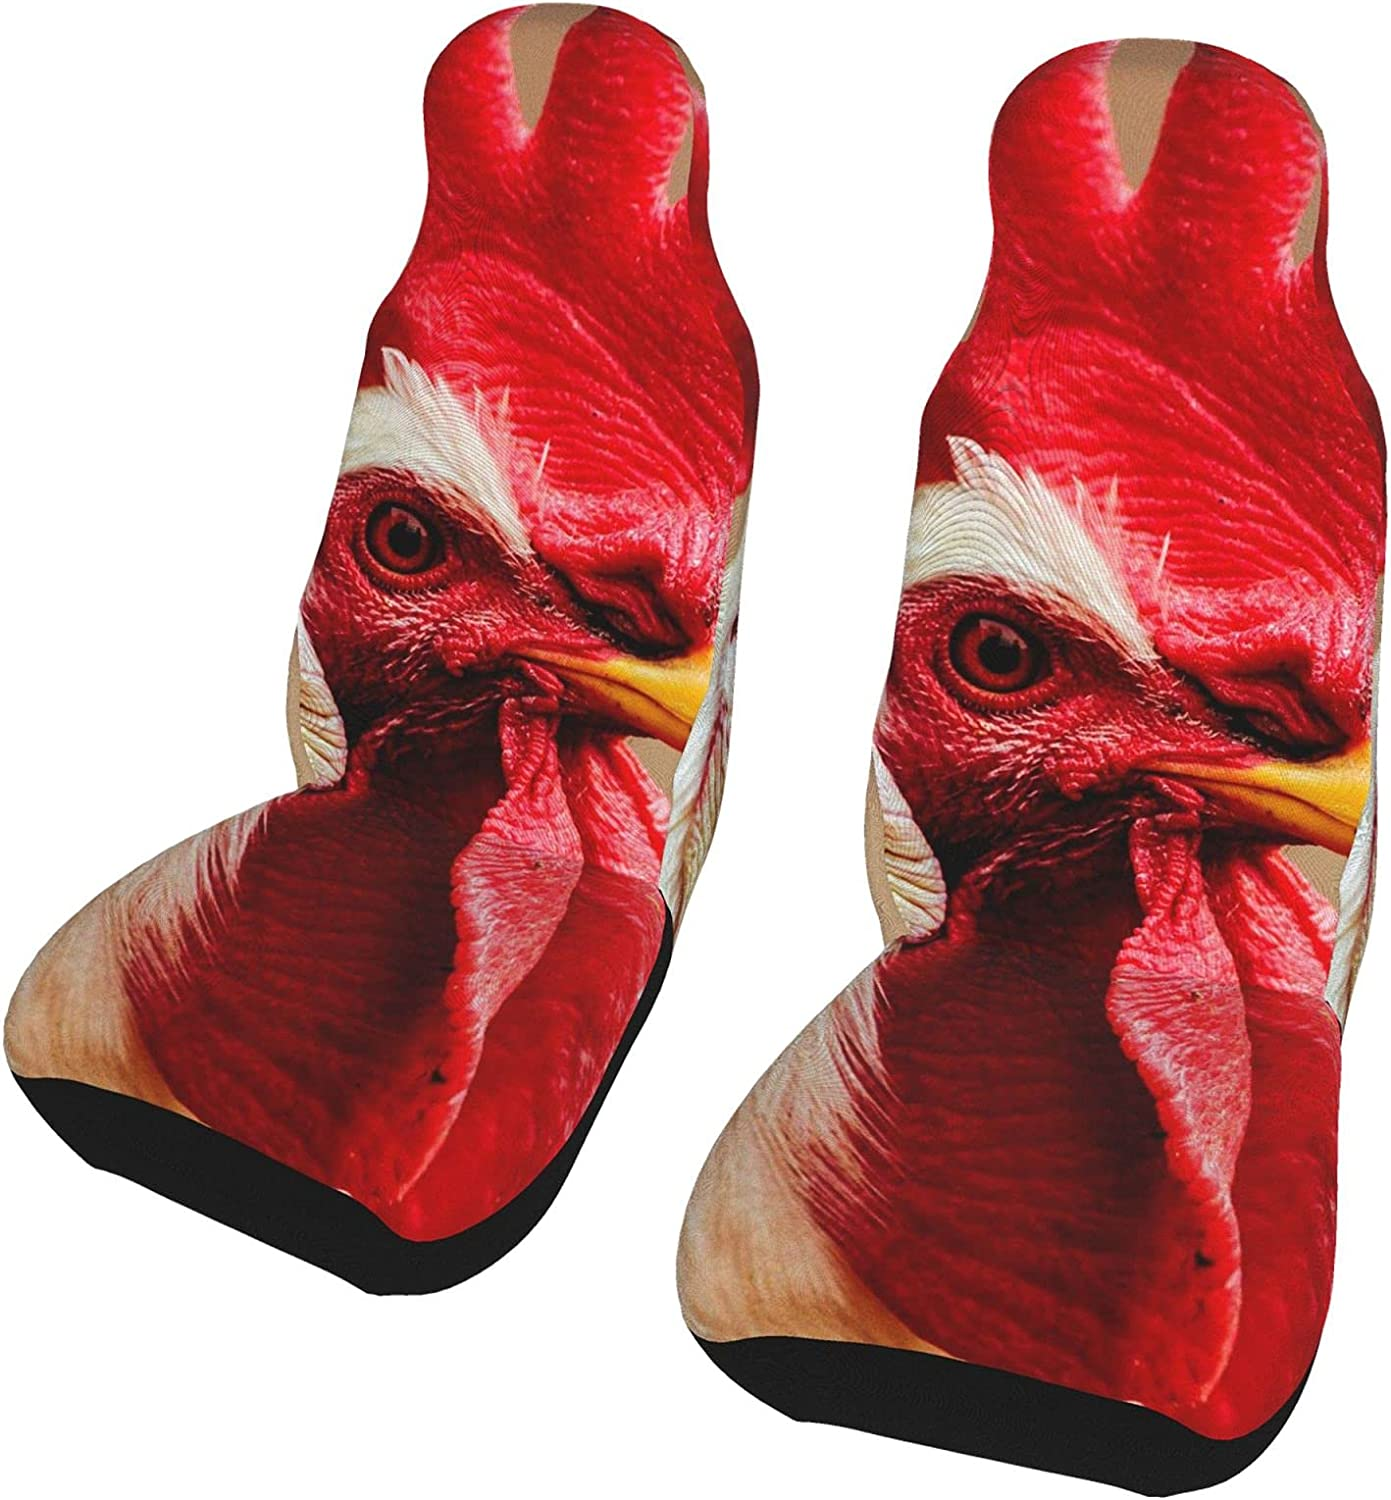 Hpoplace 2 Max 43% OFF Pcs Car Seat Covers Front S Crown Rooster Seats